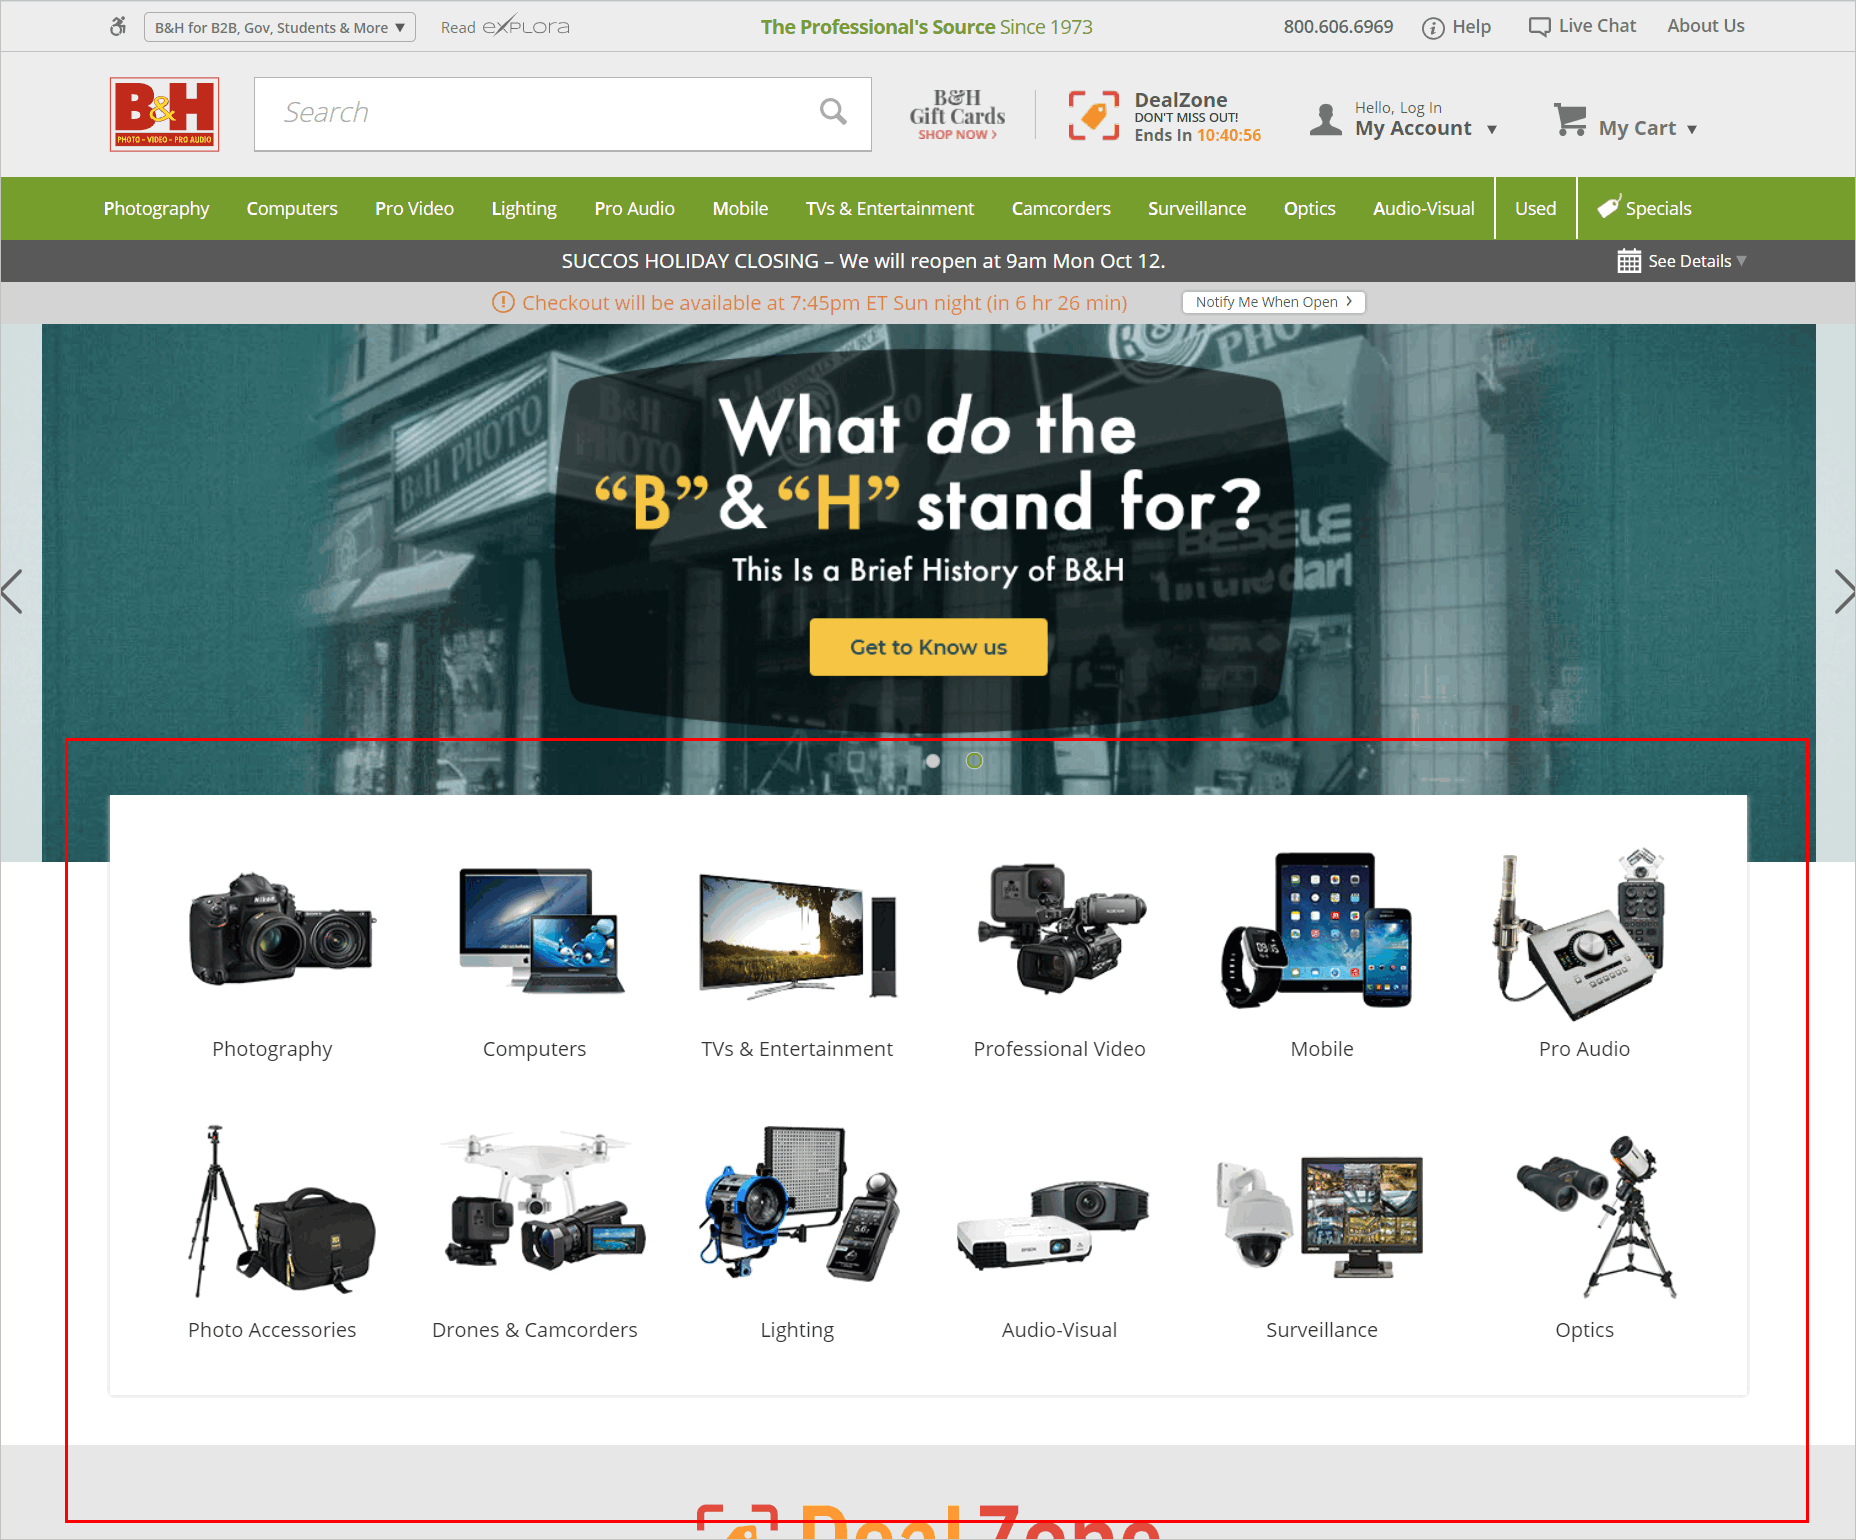 conversion rate optimization for e-commerce - good visual navigation example - bhphotovideo.com's homepage with composite images that represent different product categories